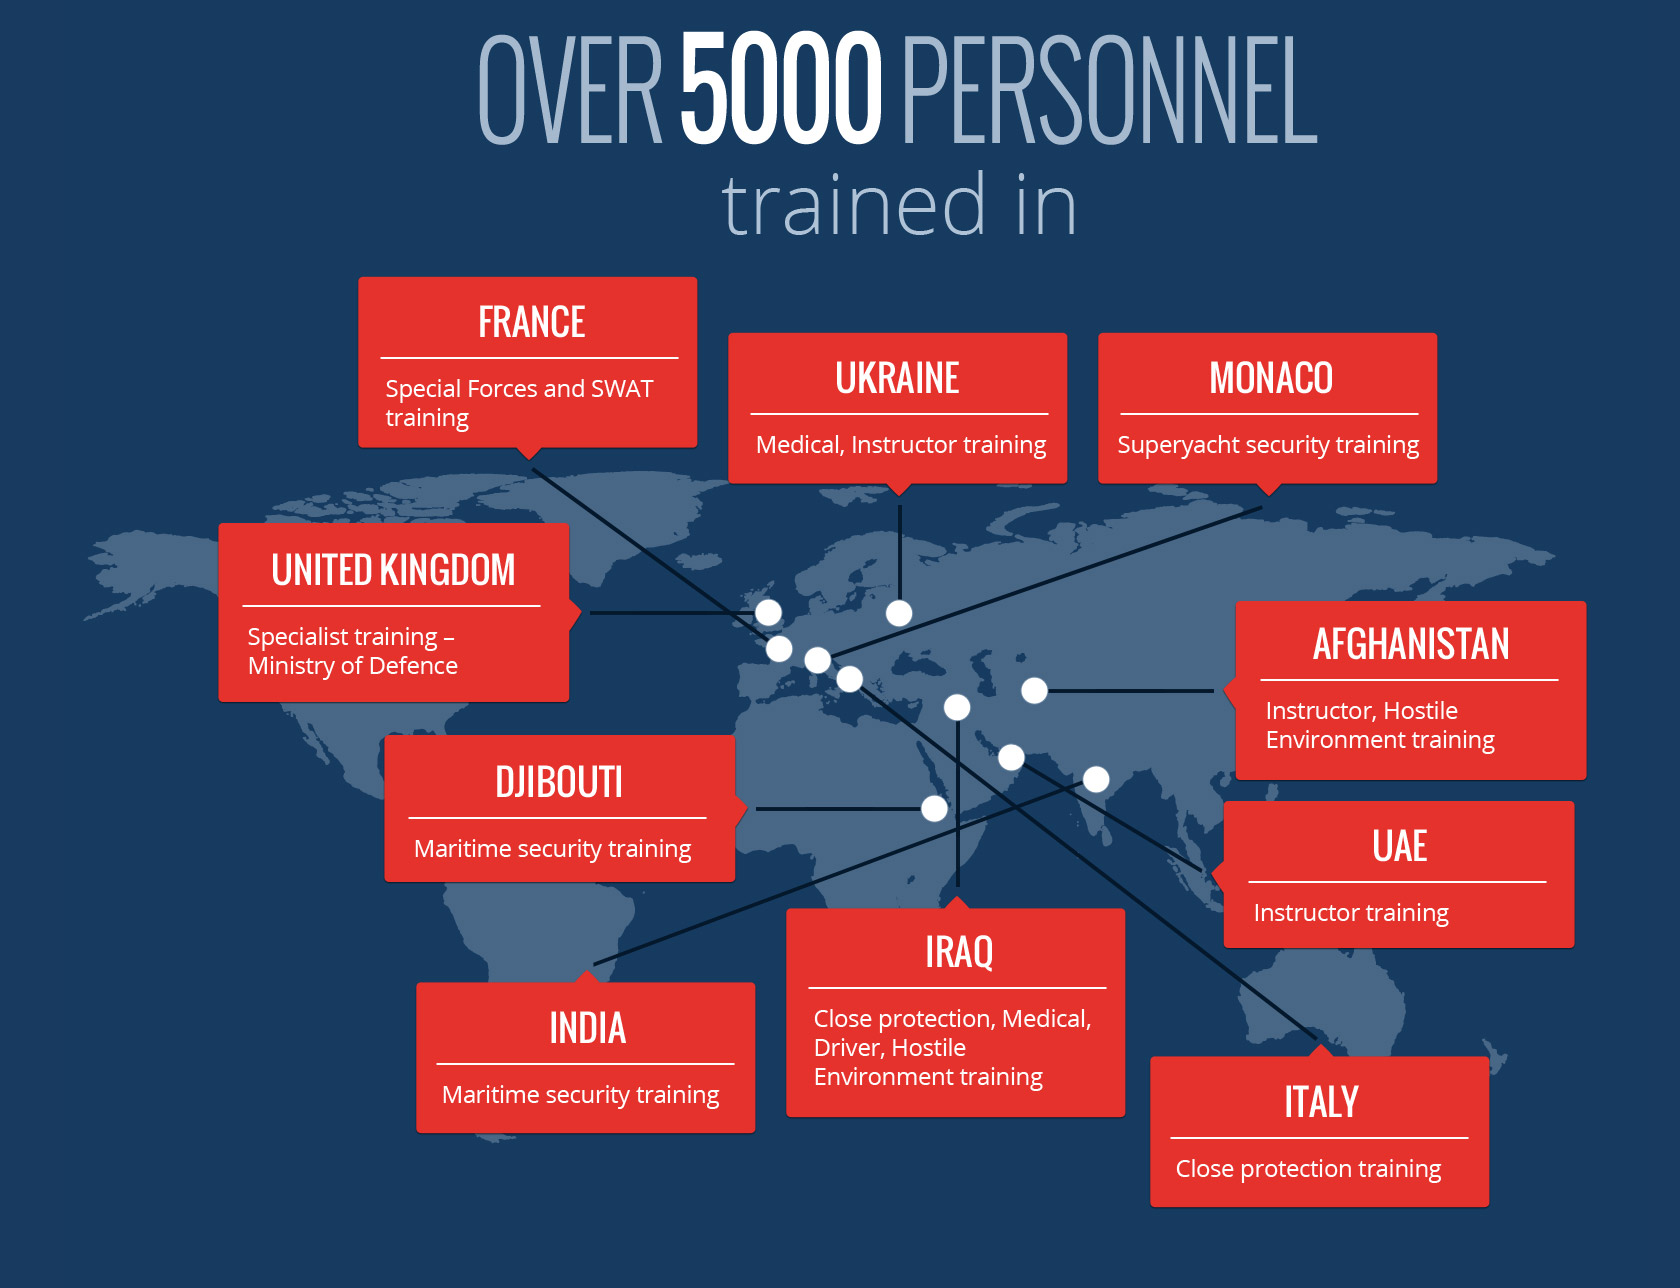 Over 5000 personnel trained in France - Security training; Ukraine - Medical, Instructor training; Monaco - Superyatch security training; United Kingdom - Specialist training – Ministry of Defence; Djibouti - Maritime security training; India - Maritime security training; Iraq - Close protection, Medical, Driver, Hostile Environment training; Italy - Close protection training; UAE - Instructor training; Afghanistan - Instructor, Hostile Environment training